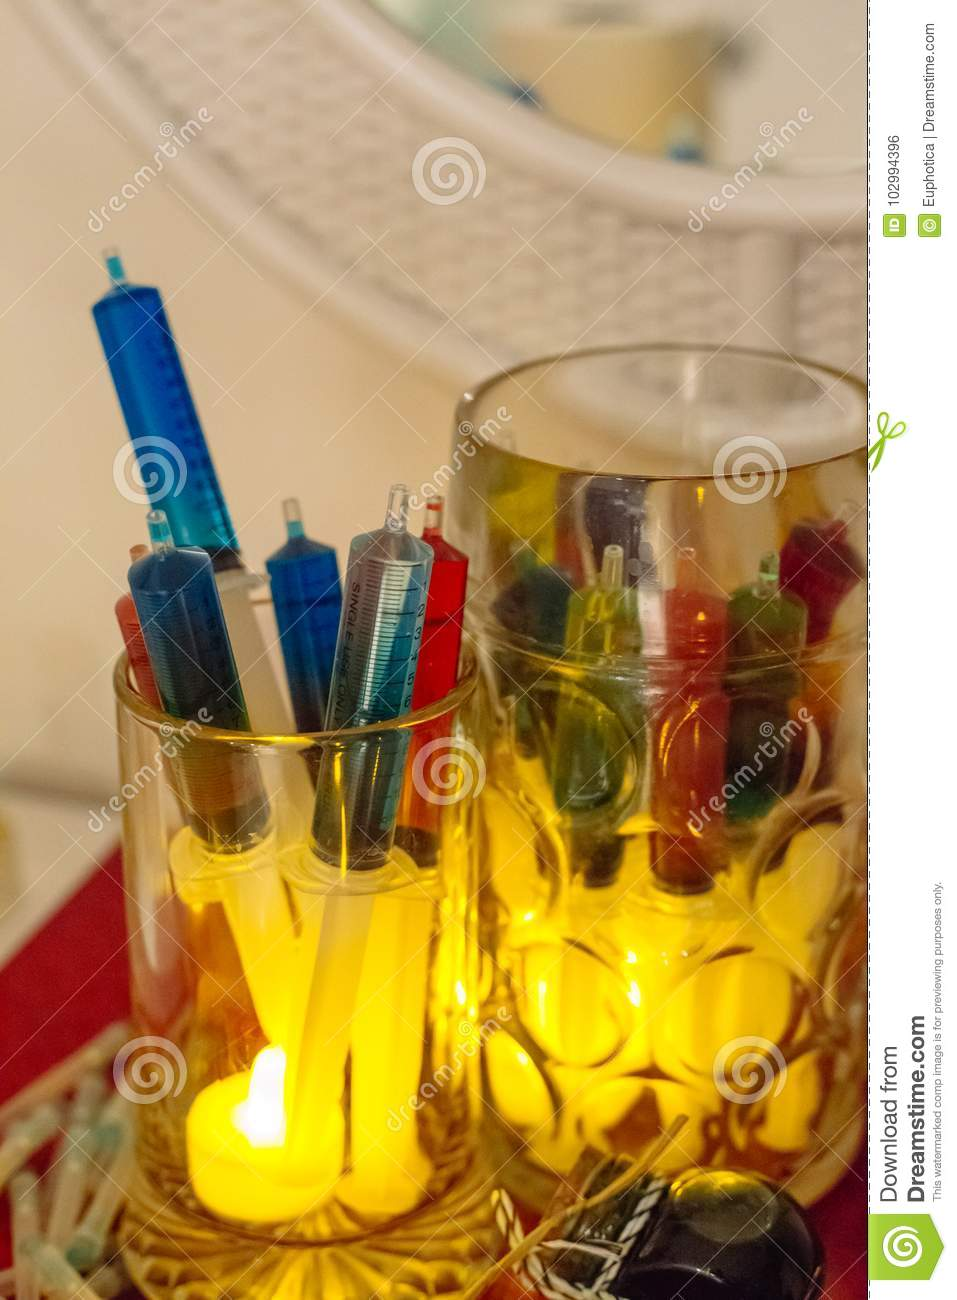 Beer Mug With Syringe Alcohol Shots Colorful Ideas For Halloween Thematic Party Stock Photo Image Of Dacopy Drink 102994396